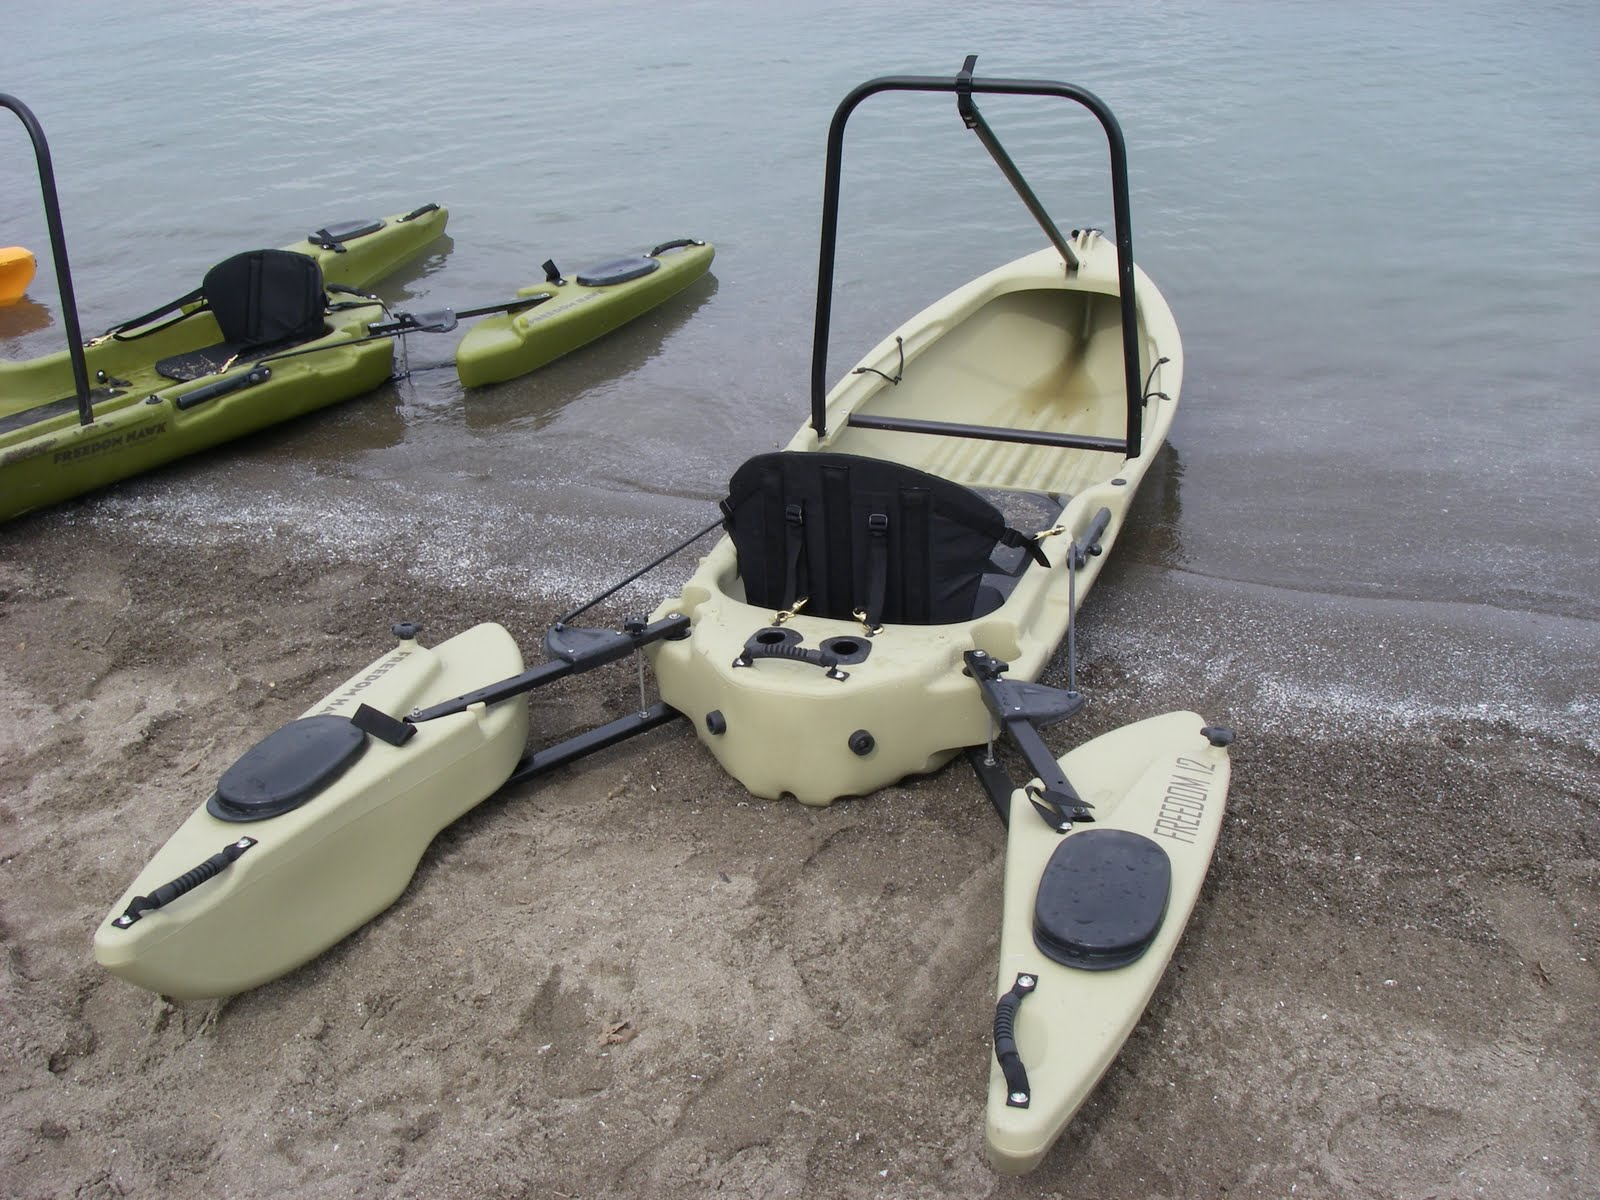 The Freedom Hawk 12 Ultralight Has Become My Favorite PFD Personal Fishing Device Boat Is Hybrid Kayak Canoe Design That Super Stable And Will